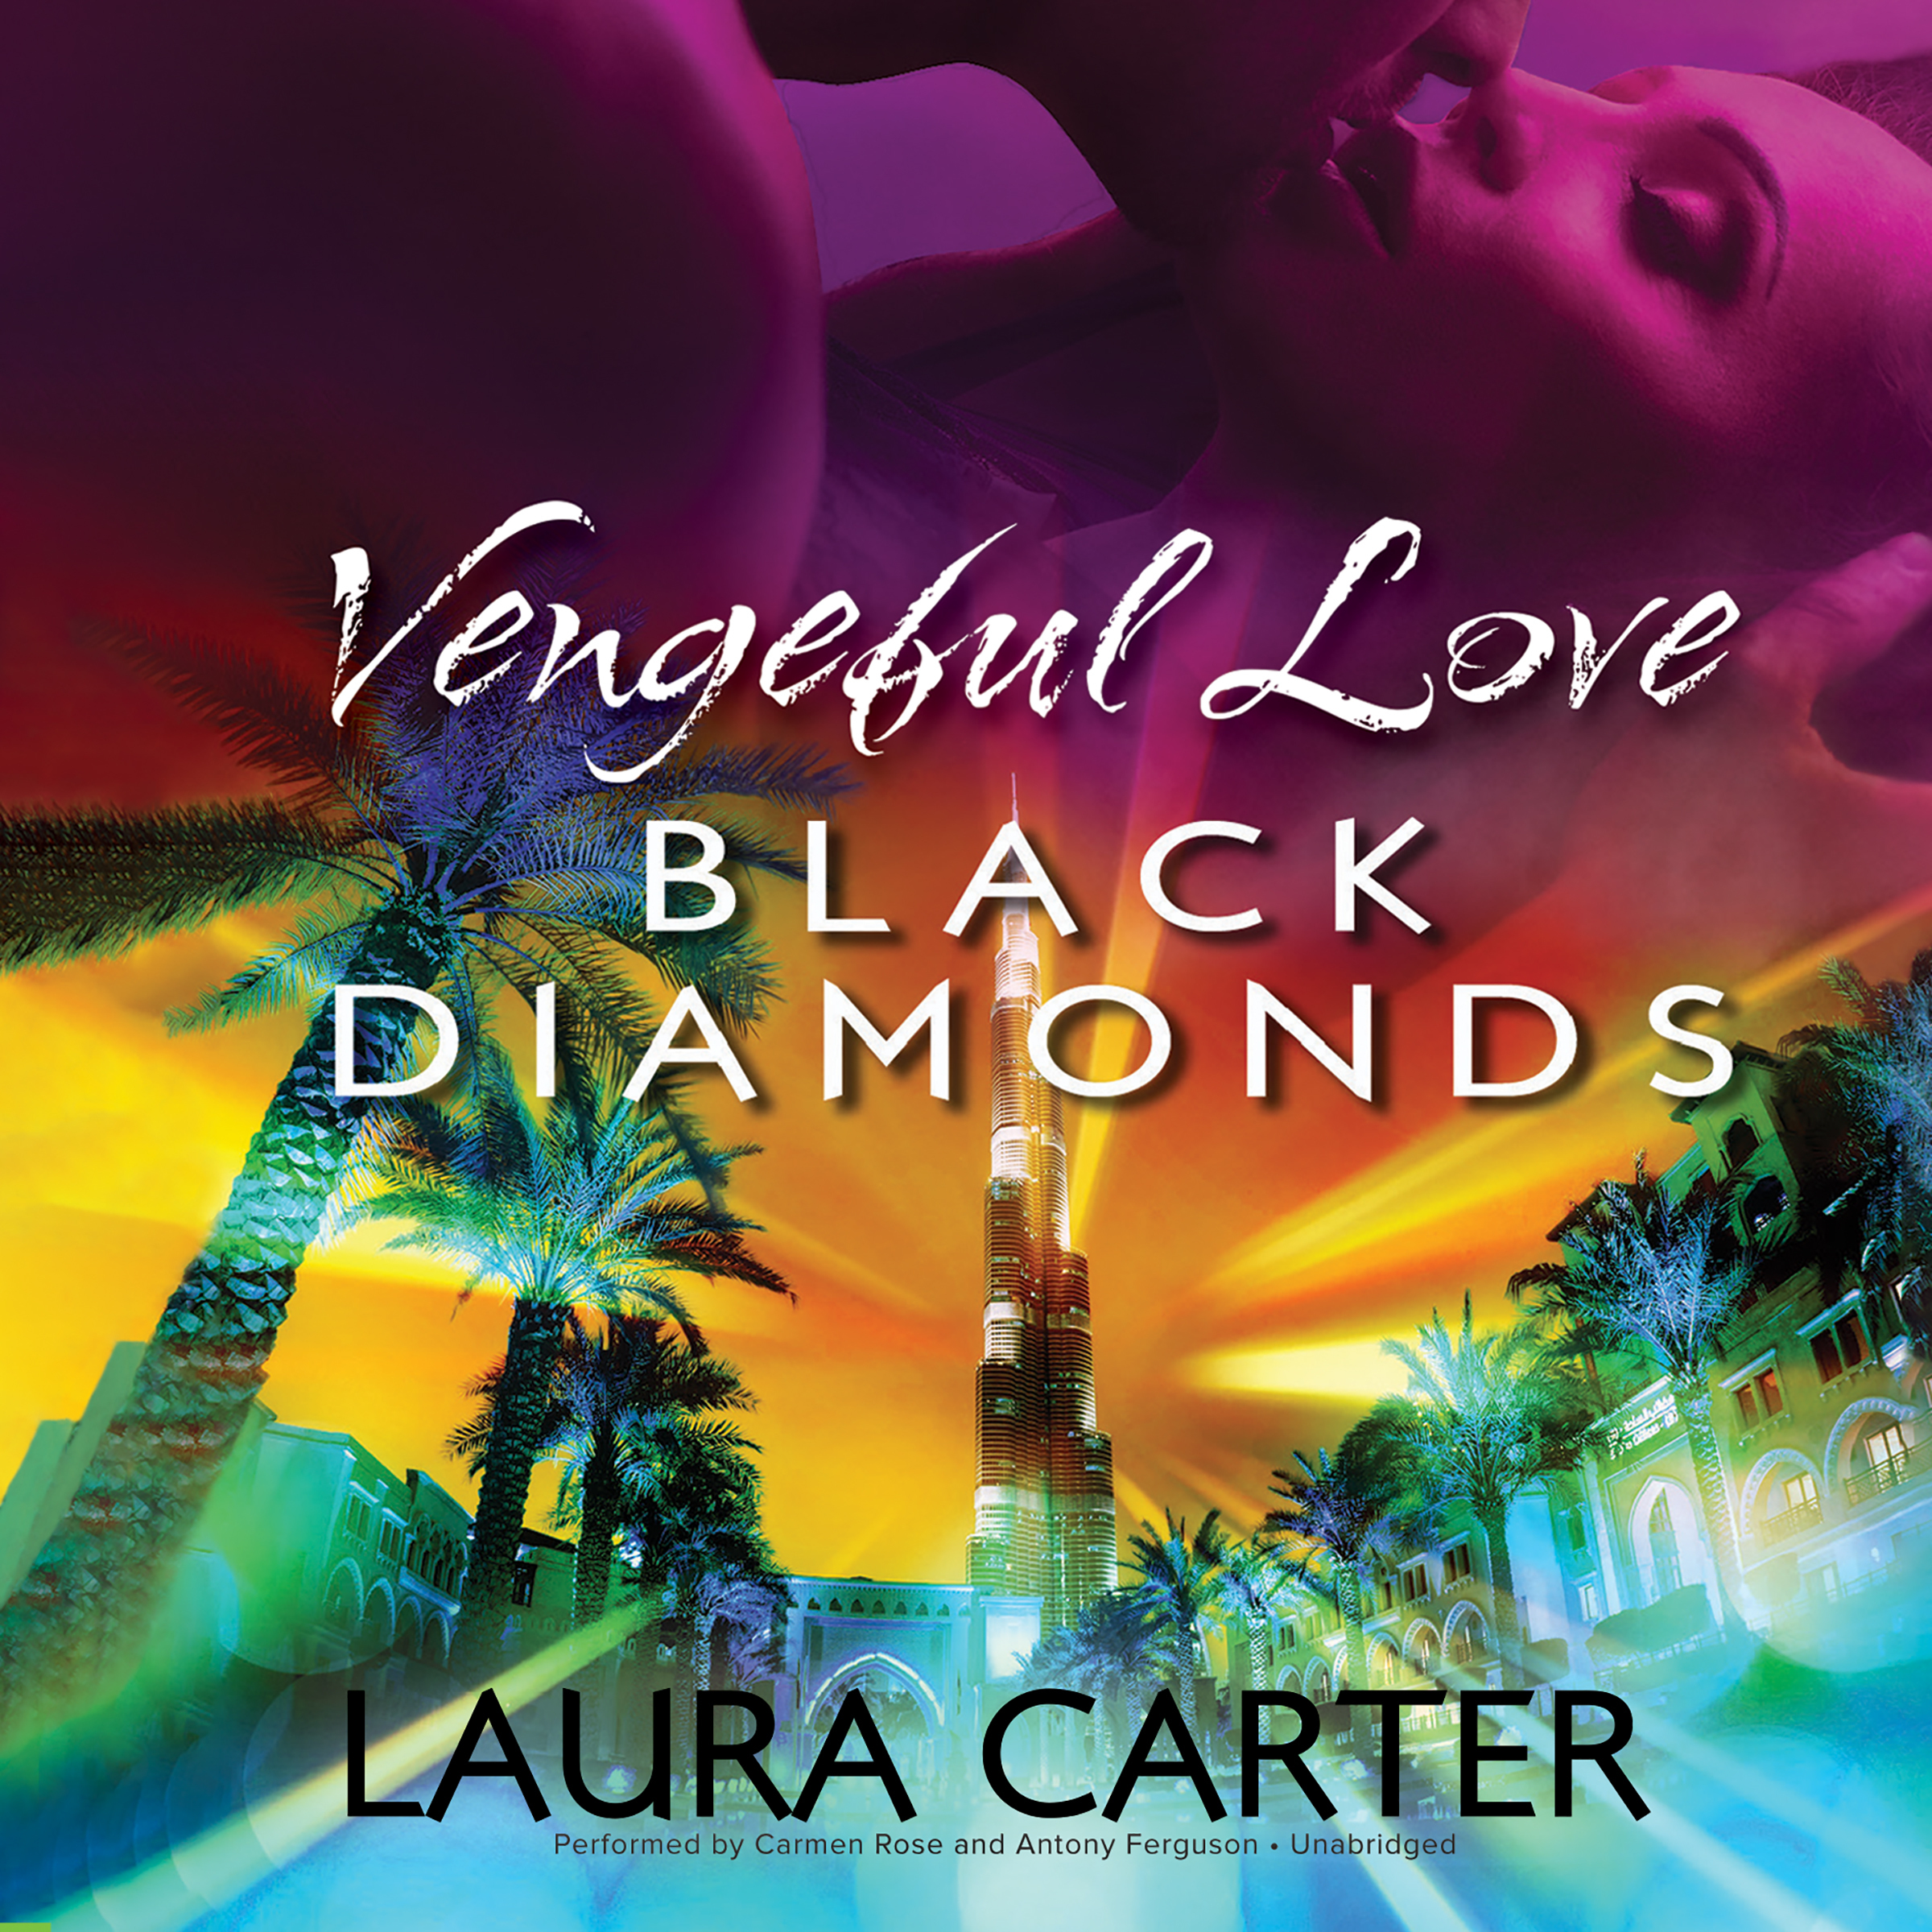 Printable Black Diamonds Audiobook Cover Art